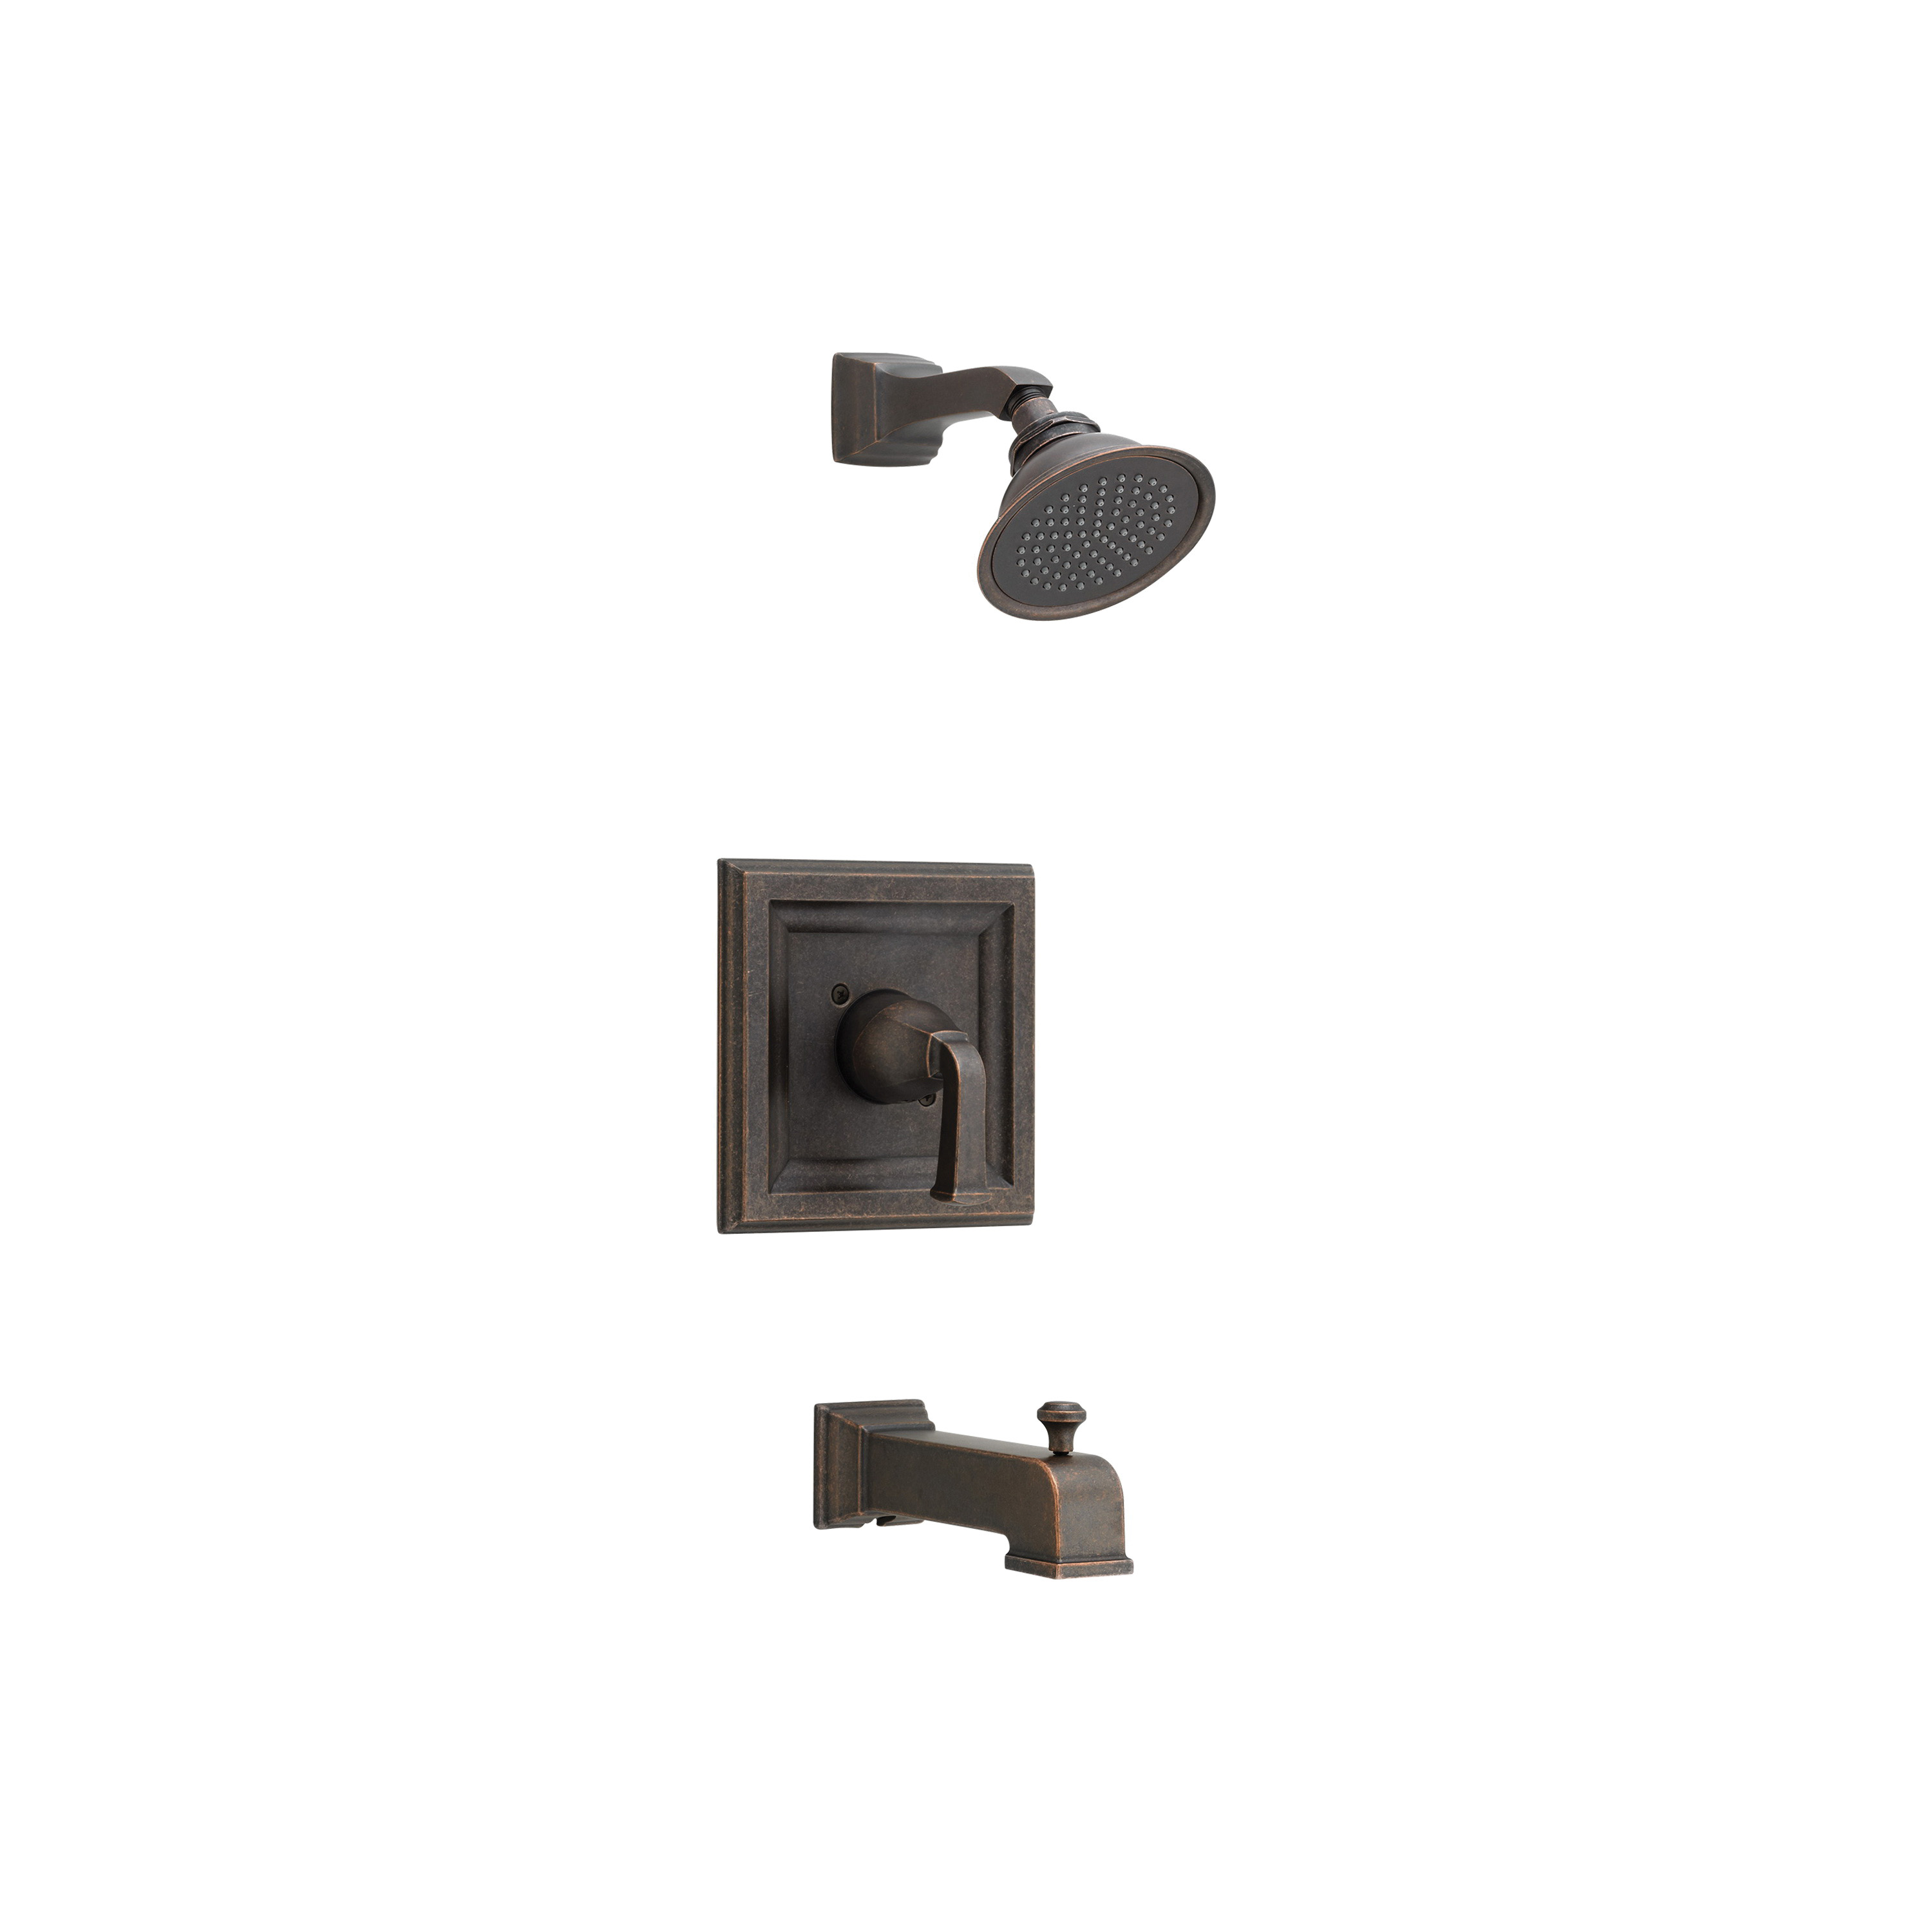 American Standard T555522.224 Town Square® Bath/Shower Trim Kit, 2.5 gpm Shower, Hand Shower Yes/No: No, Oil Rubbed Bronze